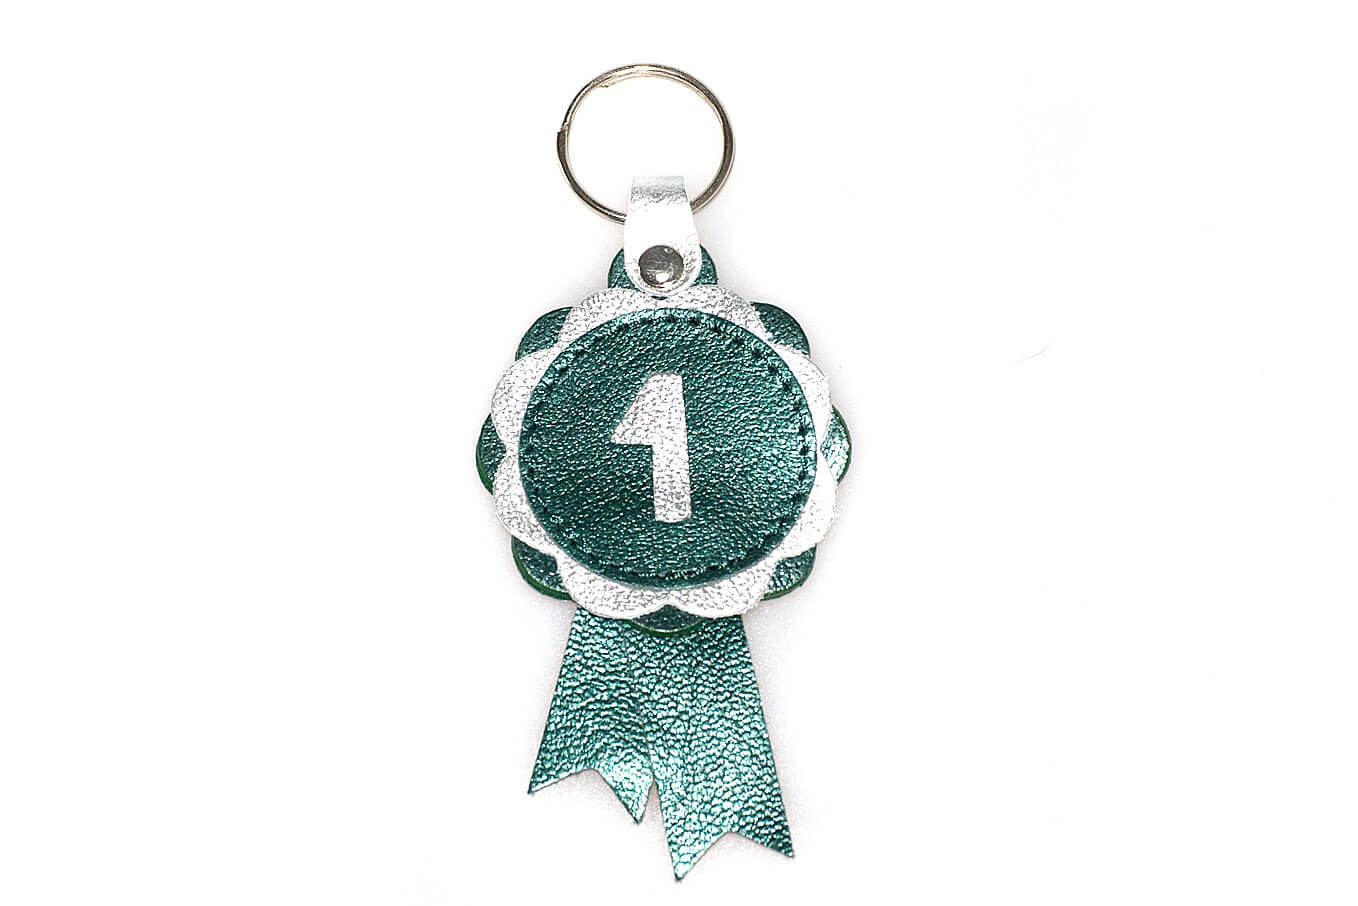 Metallis green and silver show rosette leather key ring